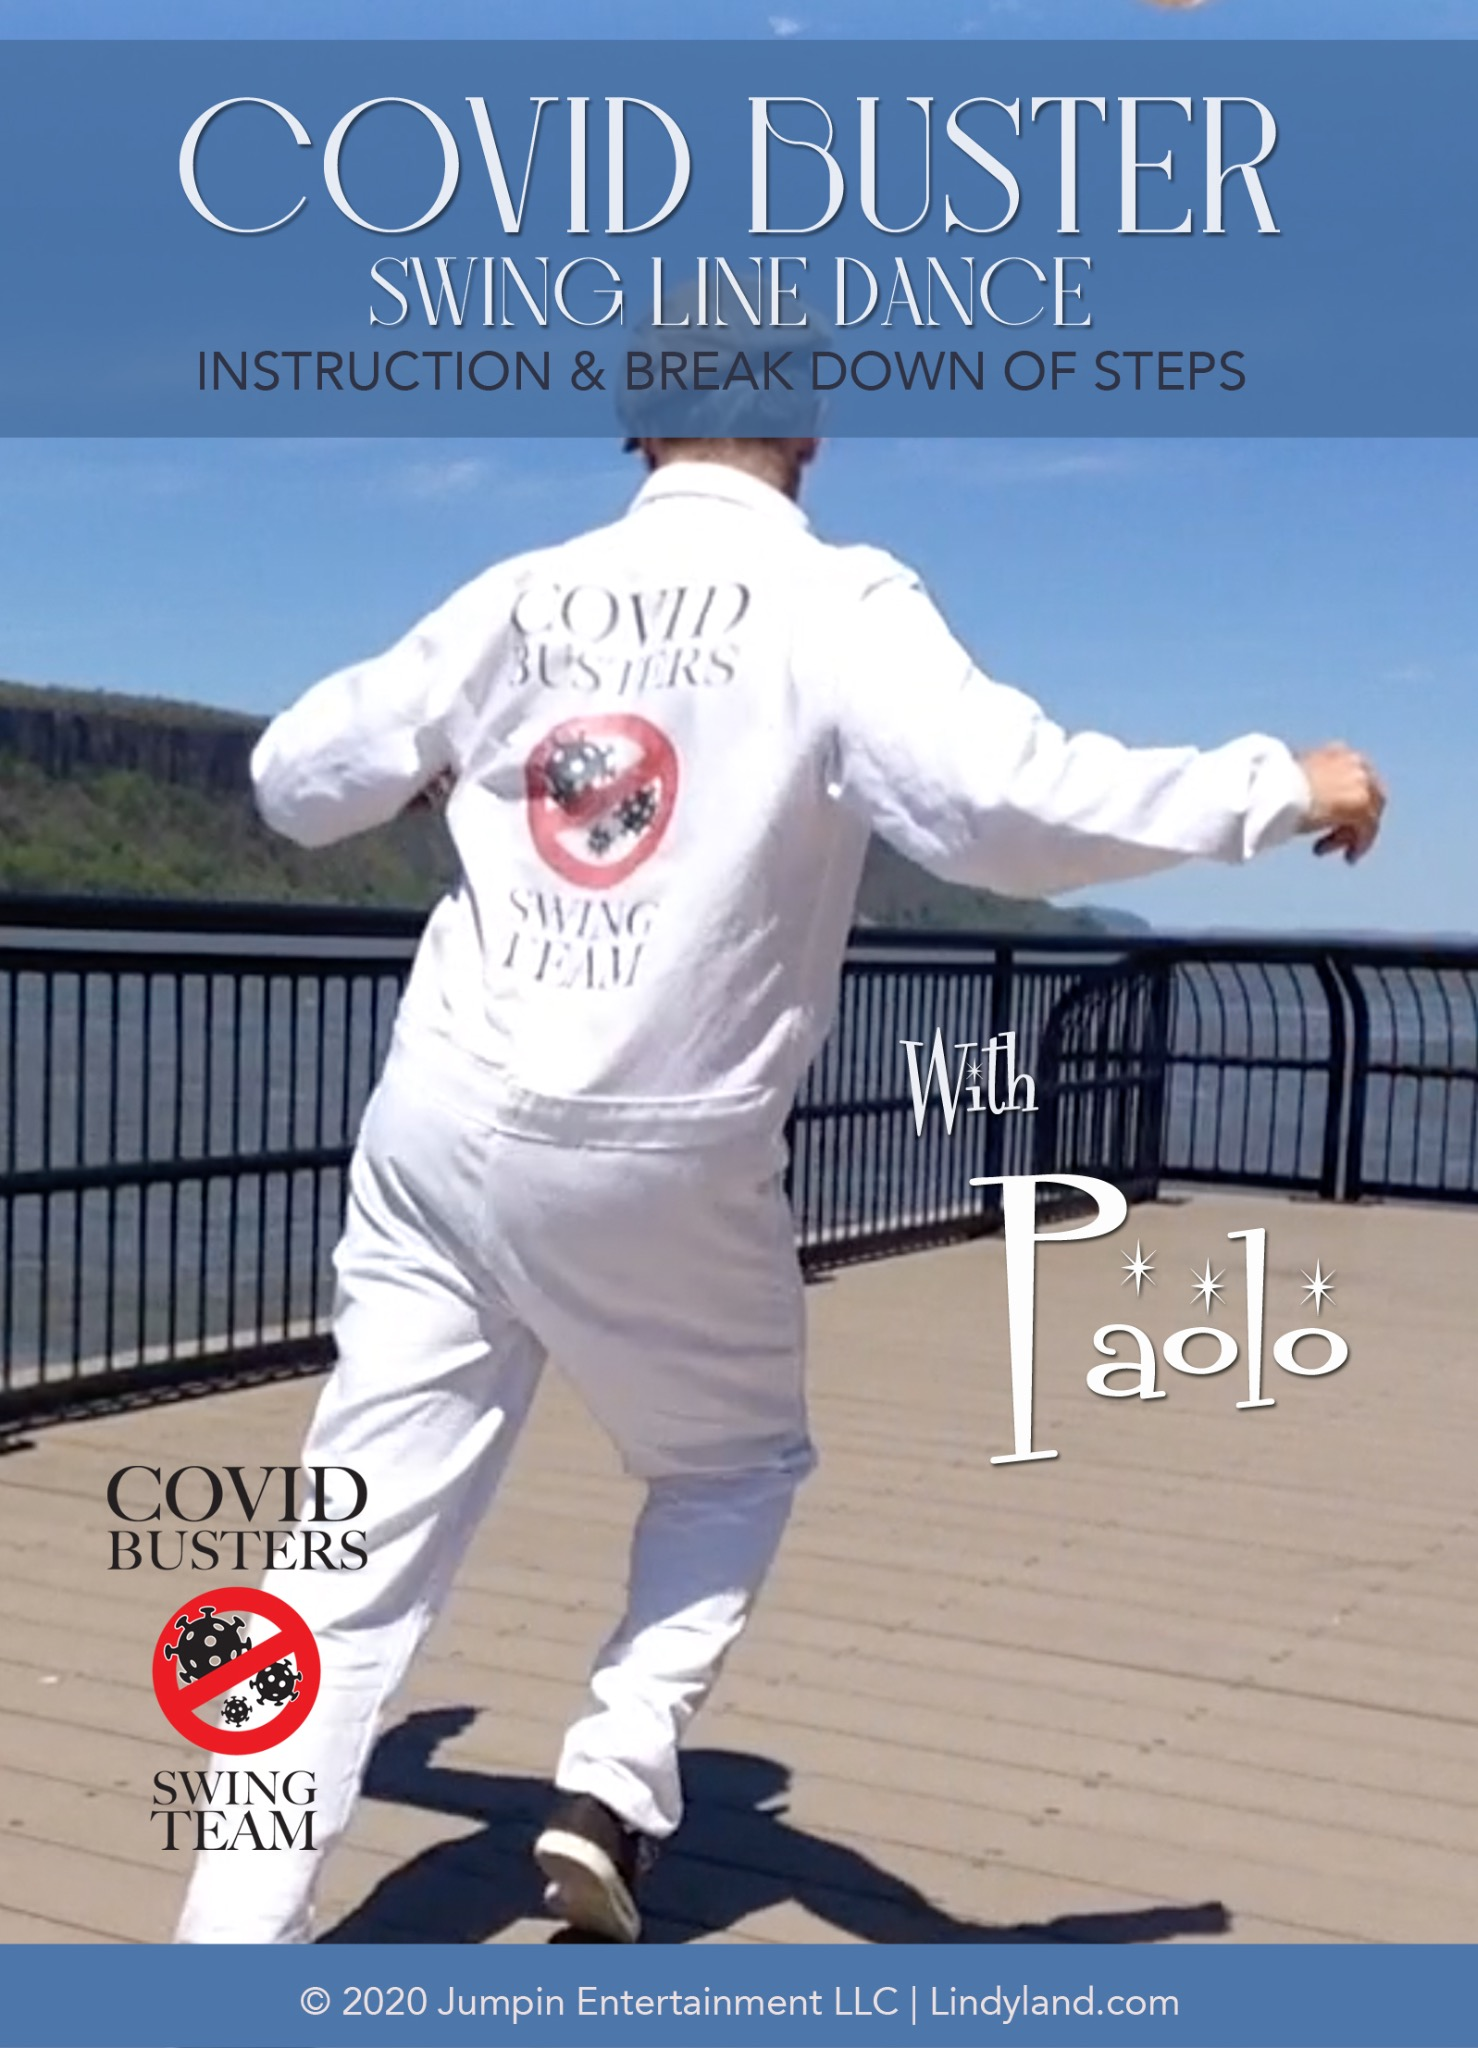 The Covid Busters Line Dance Instruction